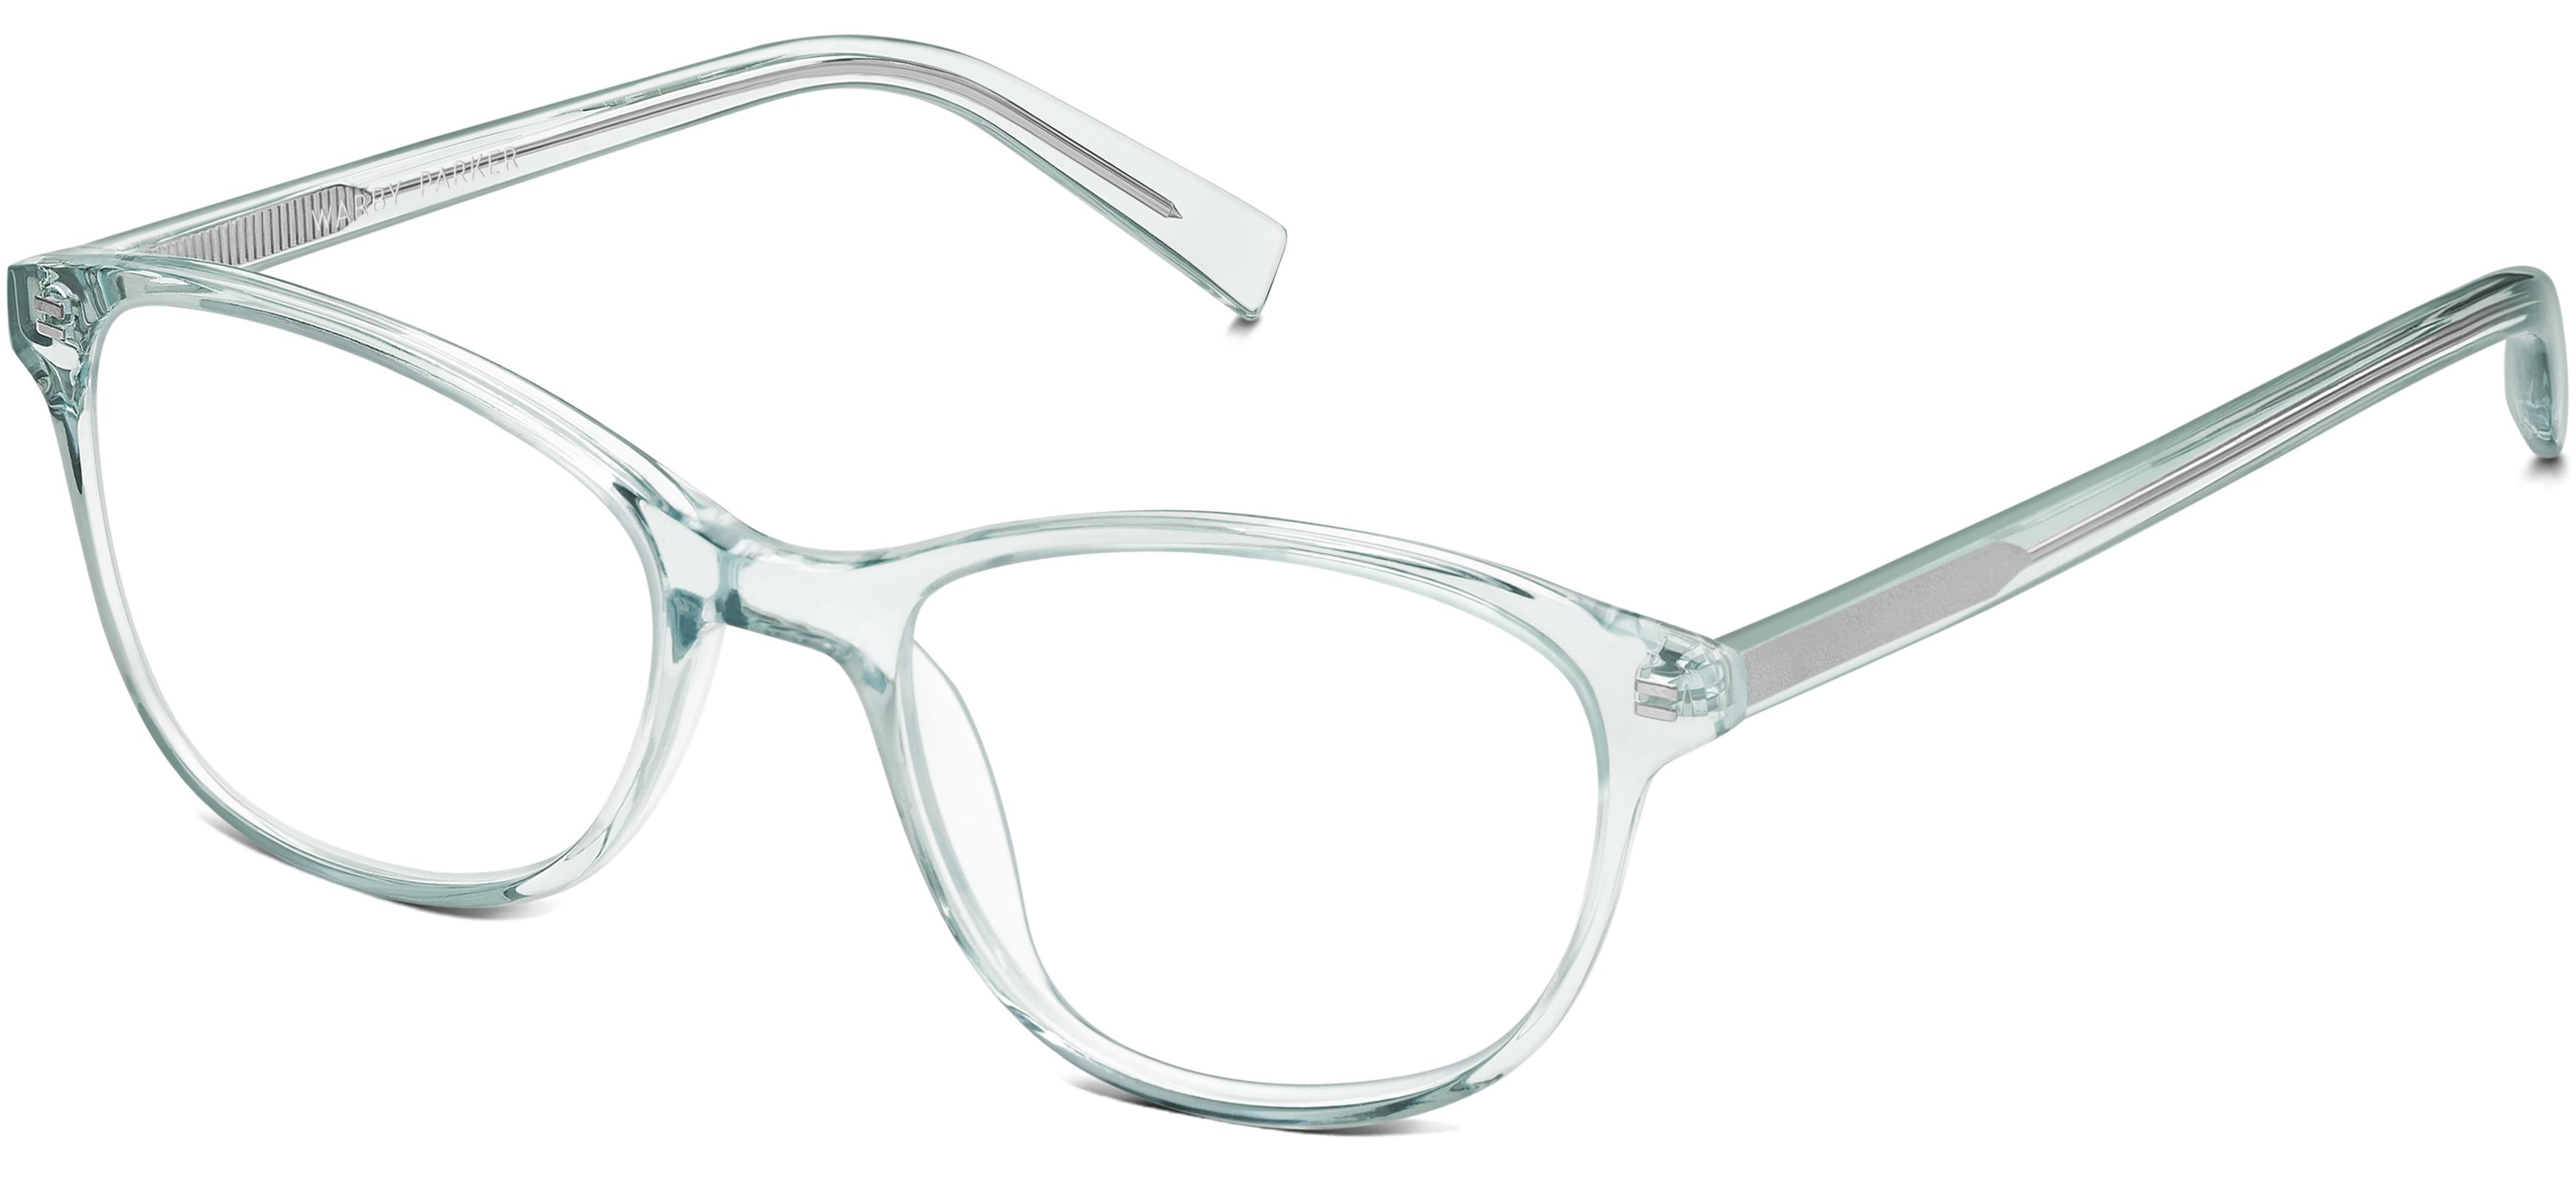 3500x1605 Daisy Eyeglasses In Cyprus Crystal For Women Warby Parker